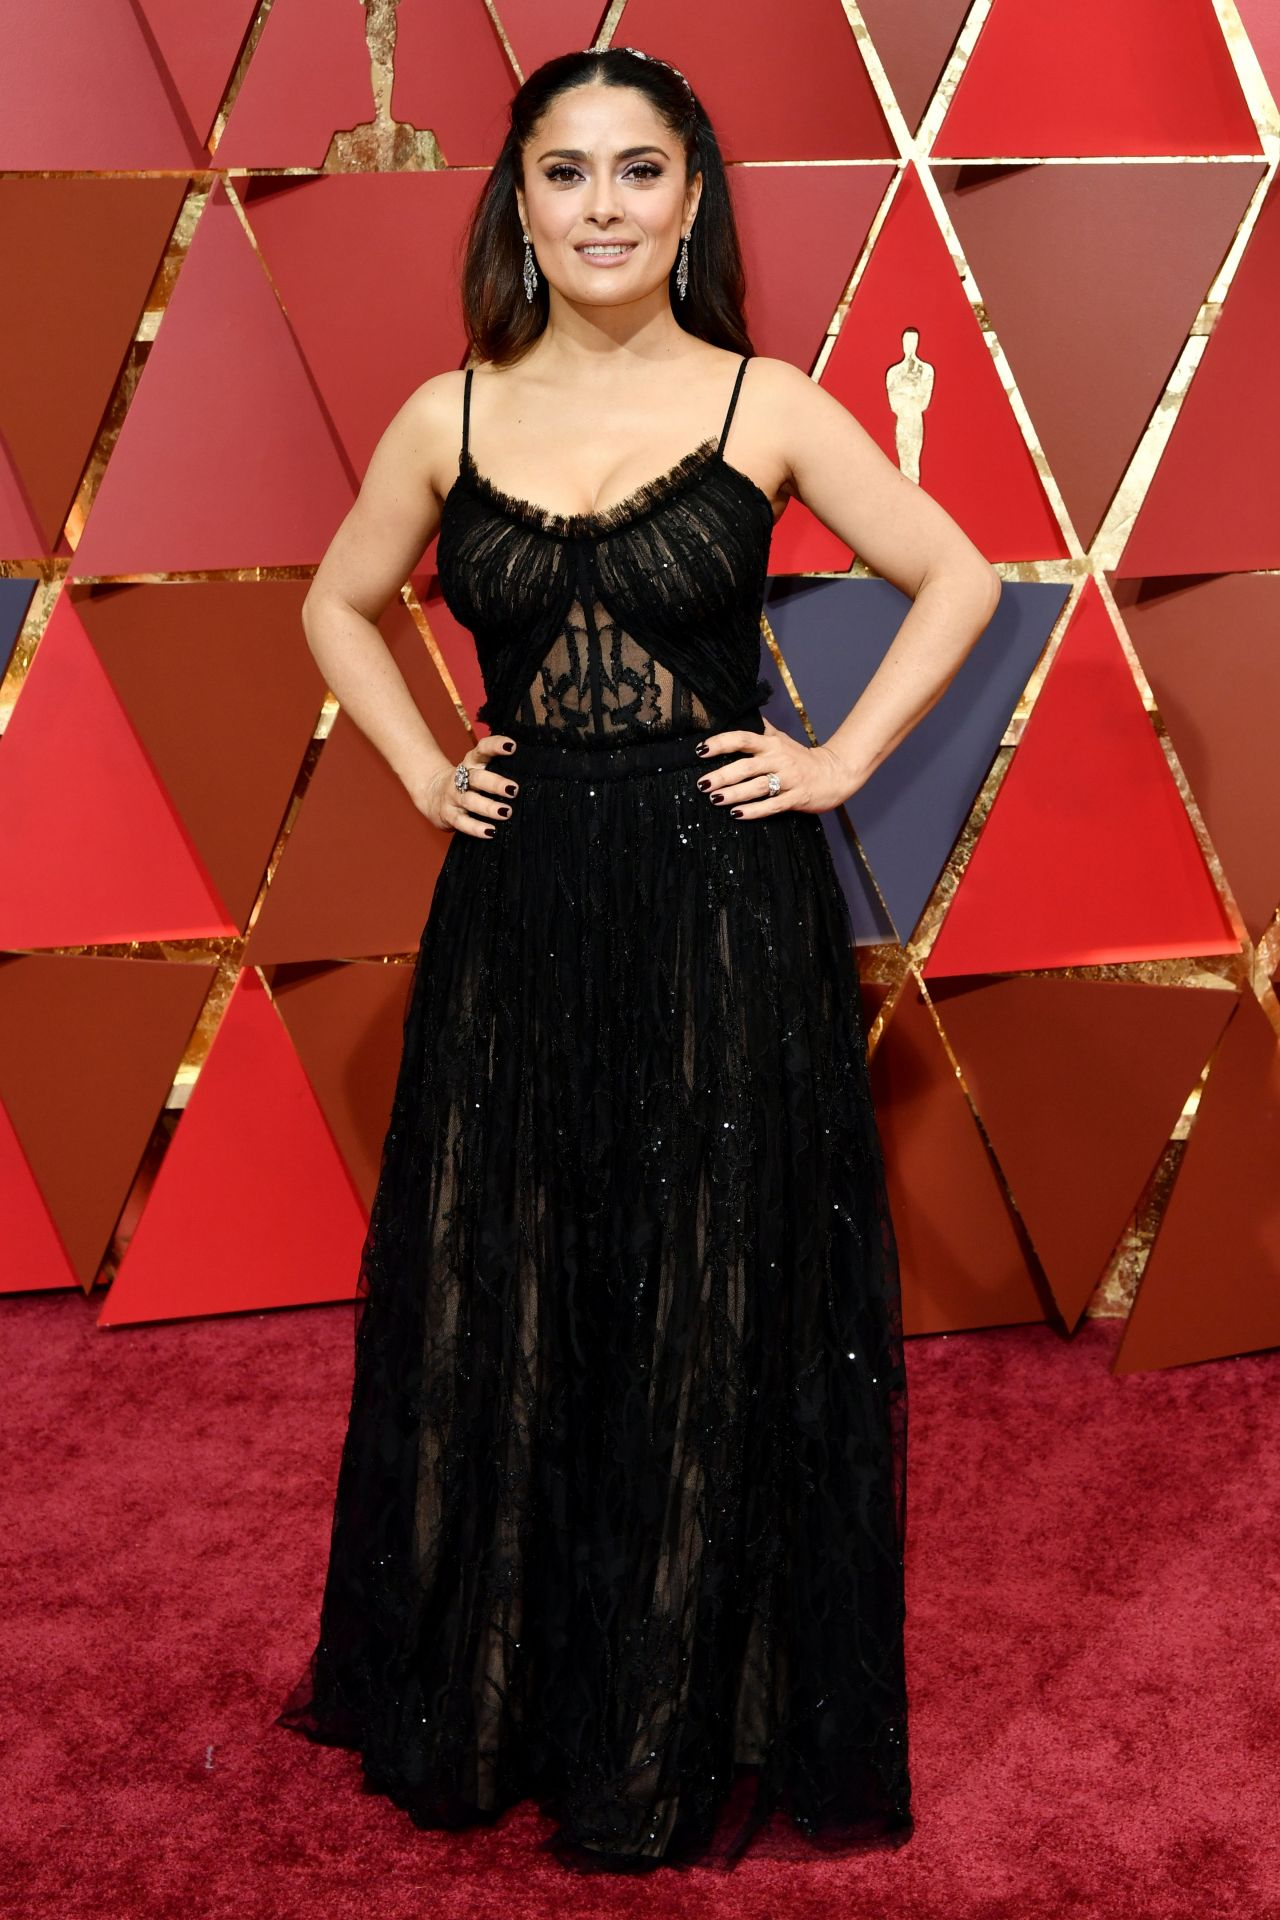 http://celebmafia.com/wp-content/uploads/2017/02/salma-hayek-oscars-2017-red-carpet-in-hollywood-5.jpg